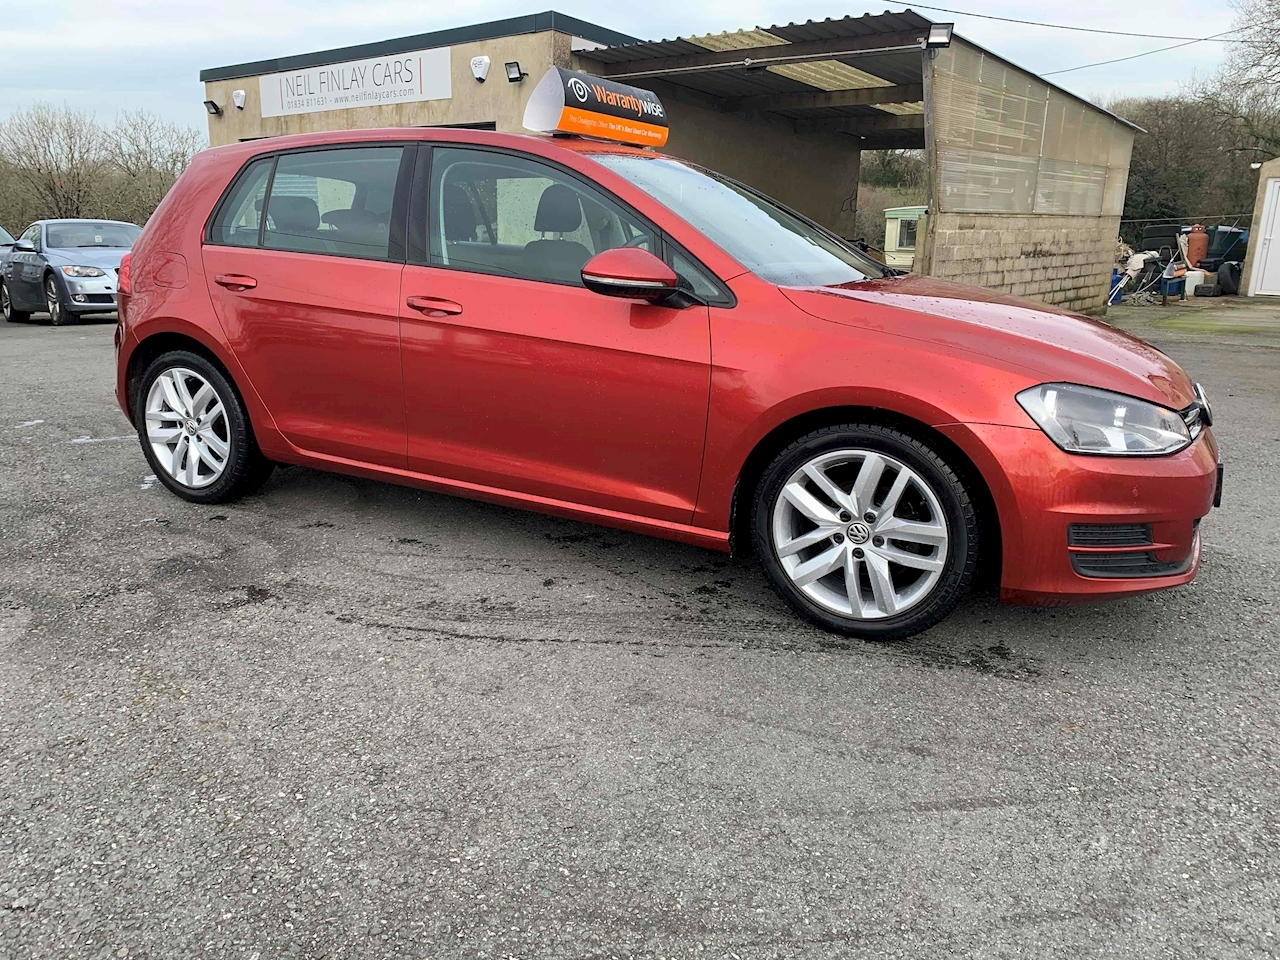 Golf Se Tdi Bluemotion Technology Hatchback 1.6 Manual Diesel